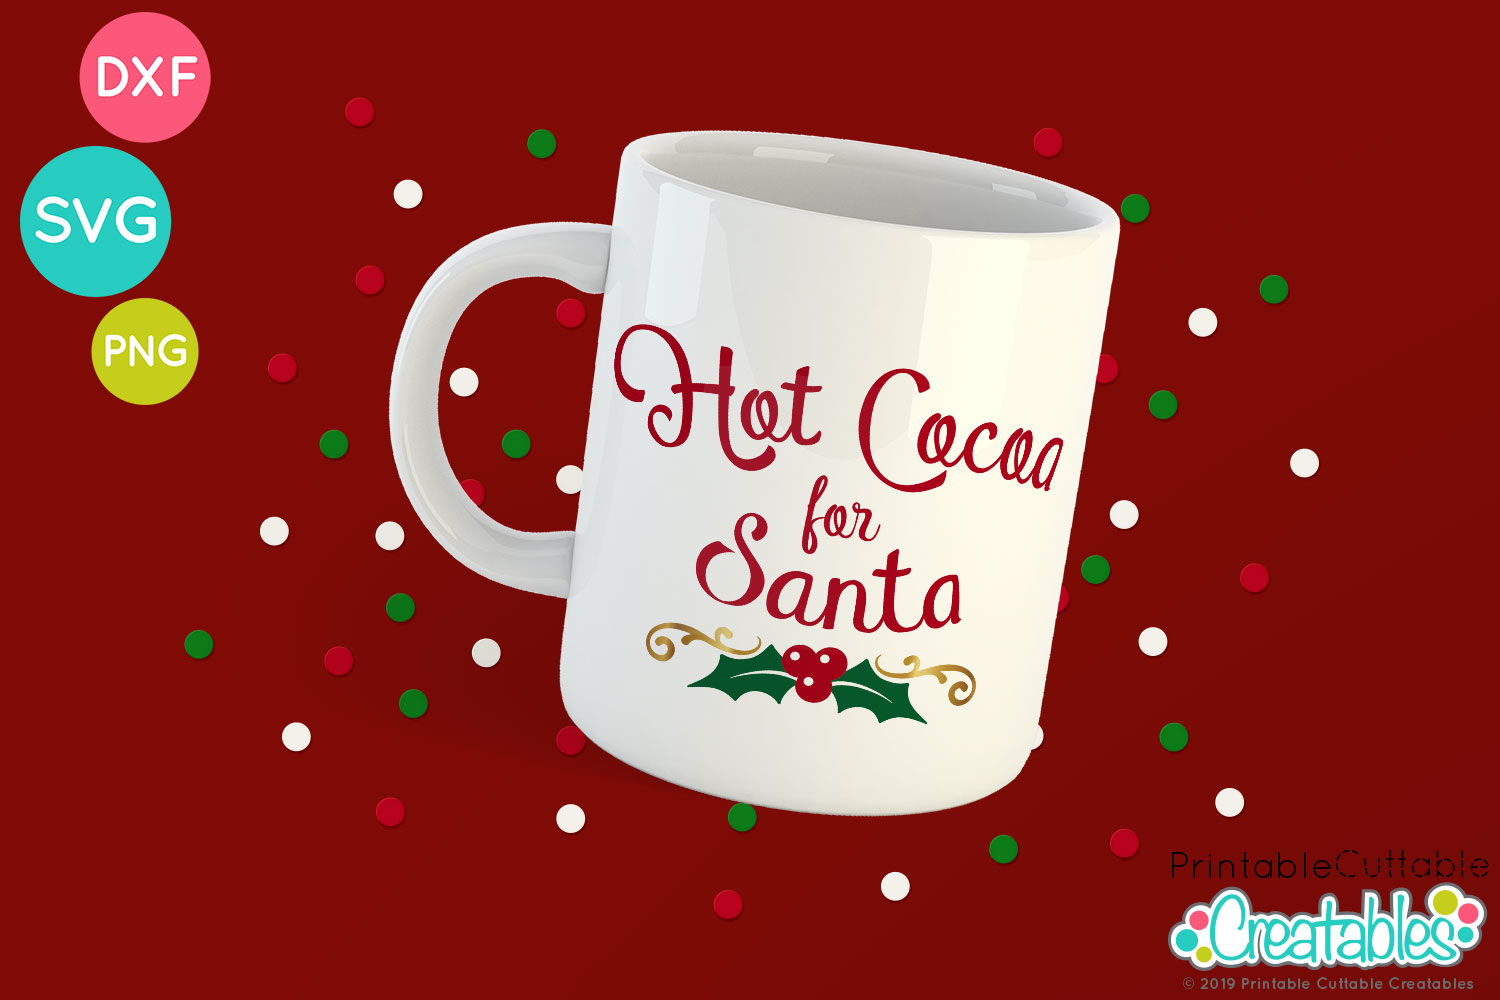 Cuts for Cricut Clipart PNG Decoration Drink Hot Cocoa SVG Silhouette Holiday Vector Xmas Cutting Christmas Cut File Instant Download